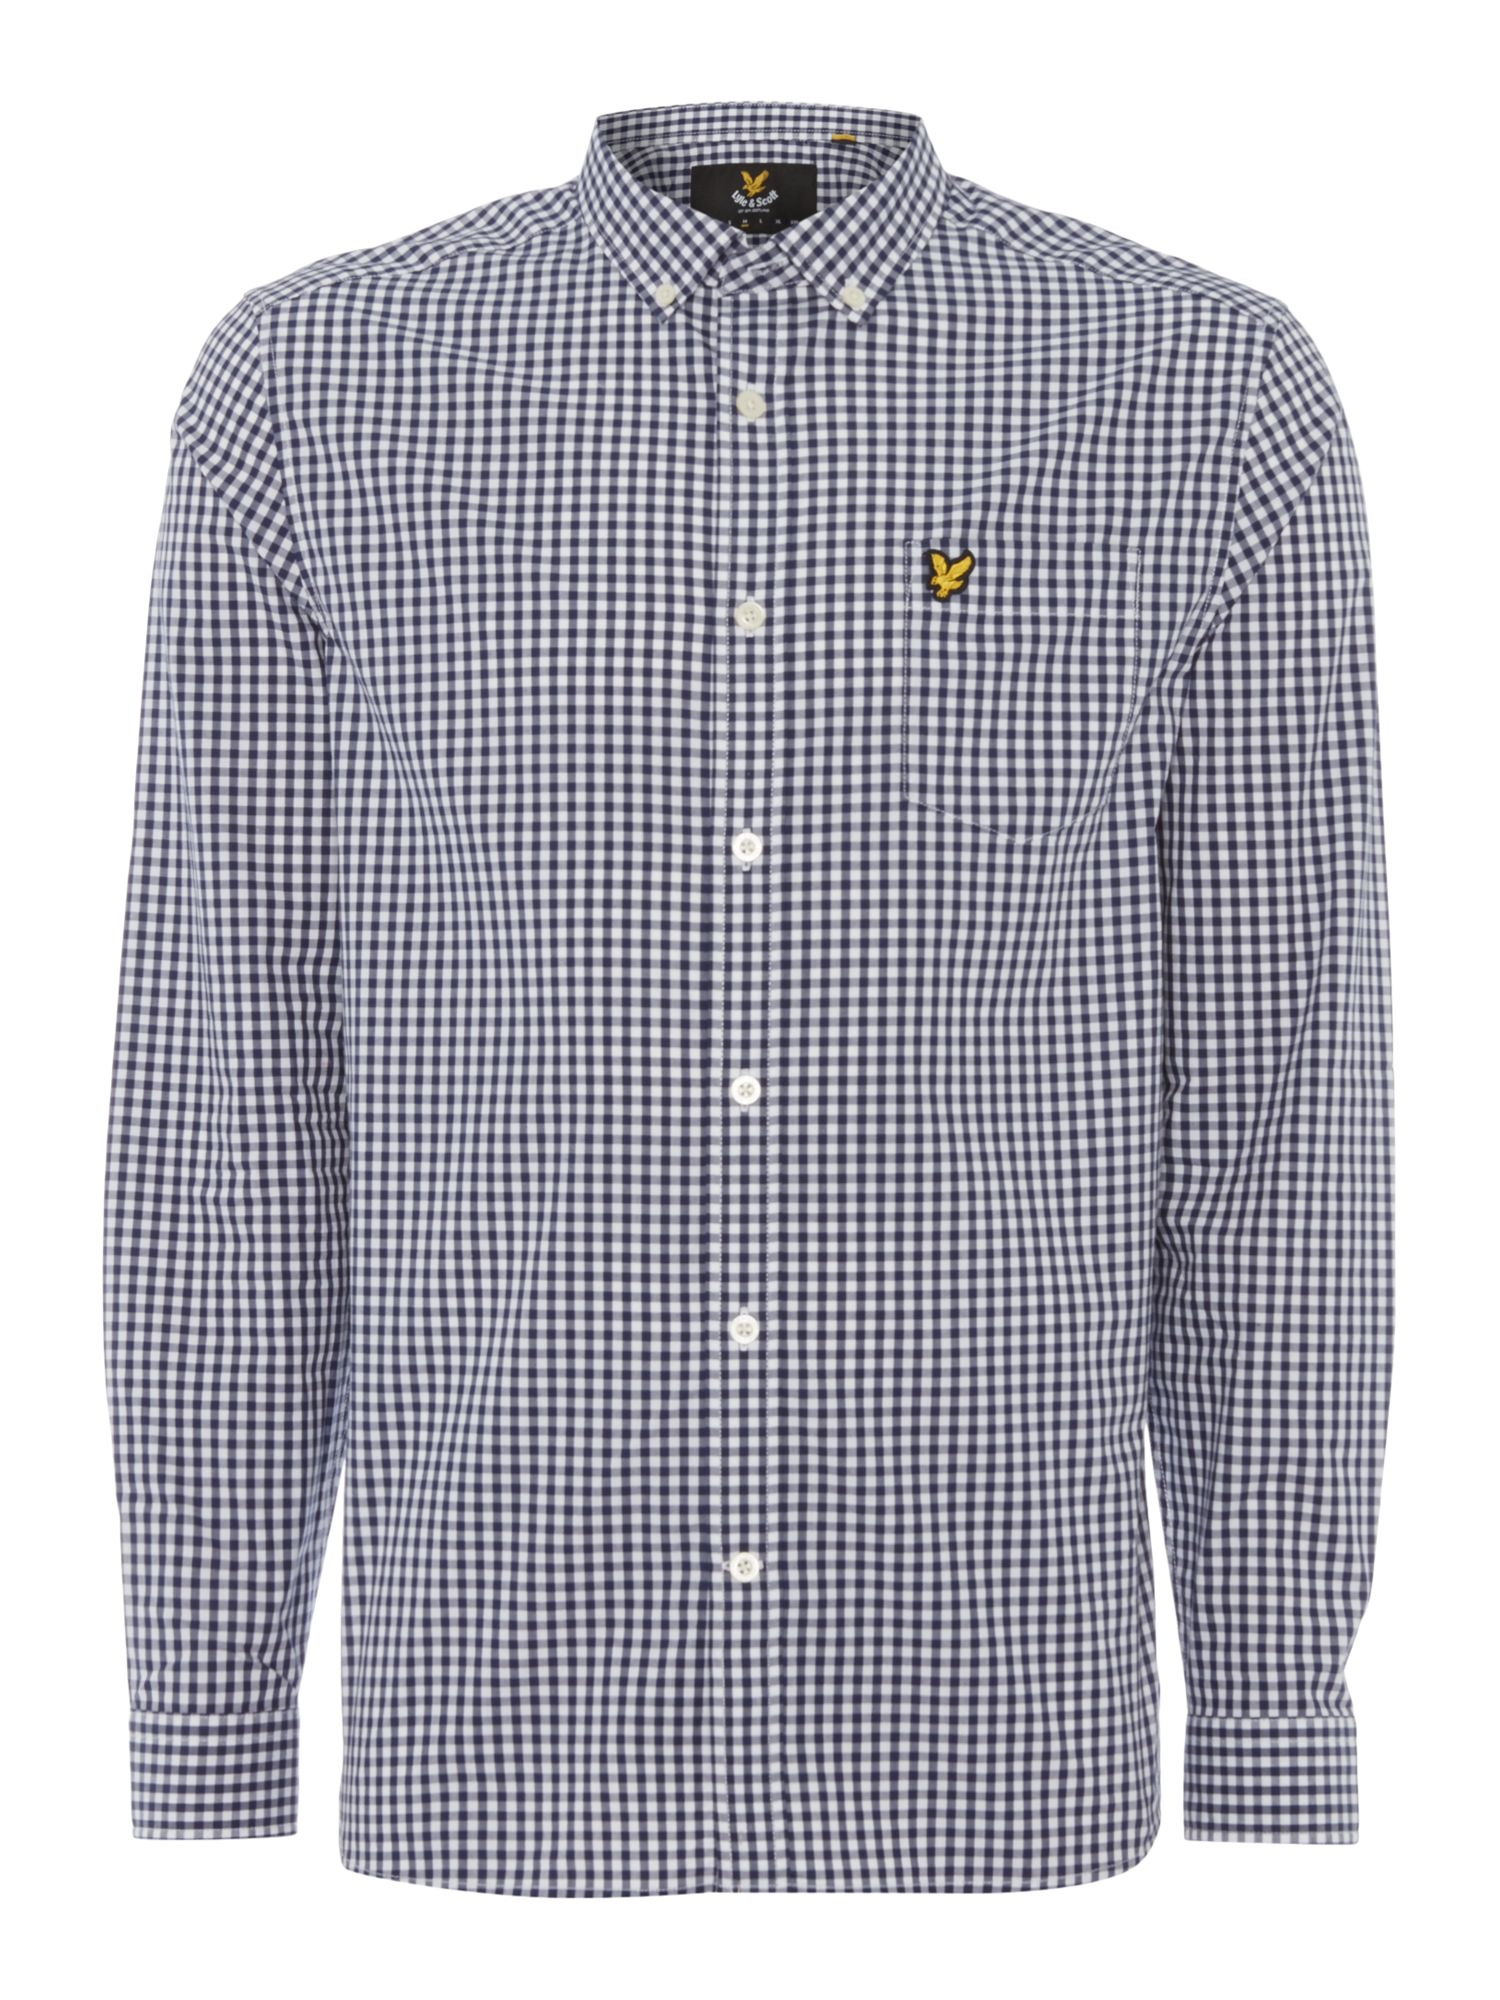 Lyle and Scott Men's Lyle and Scott Long sleeve gingham check shirt, Navy